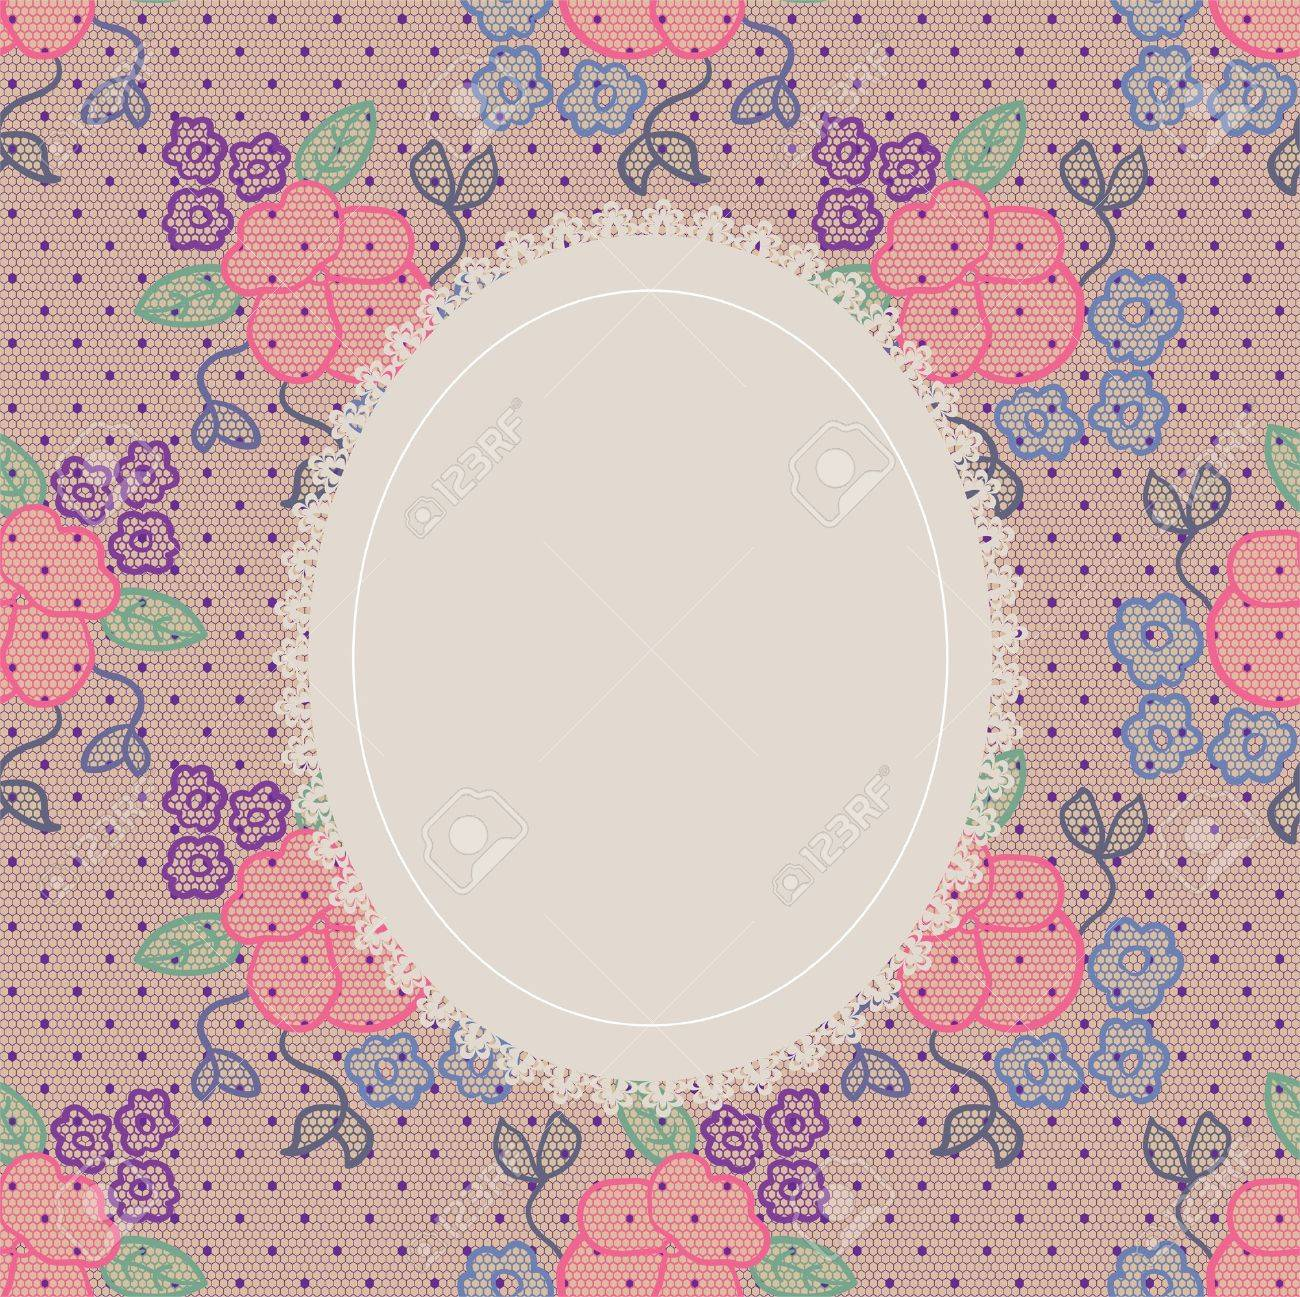 Elegant doily on lace gentle background for scrapbooks, albums, crafts, decorating Stock Vector - 15095530